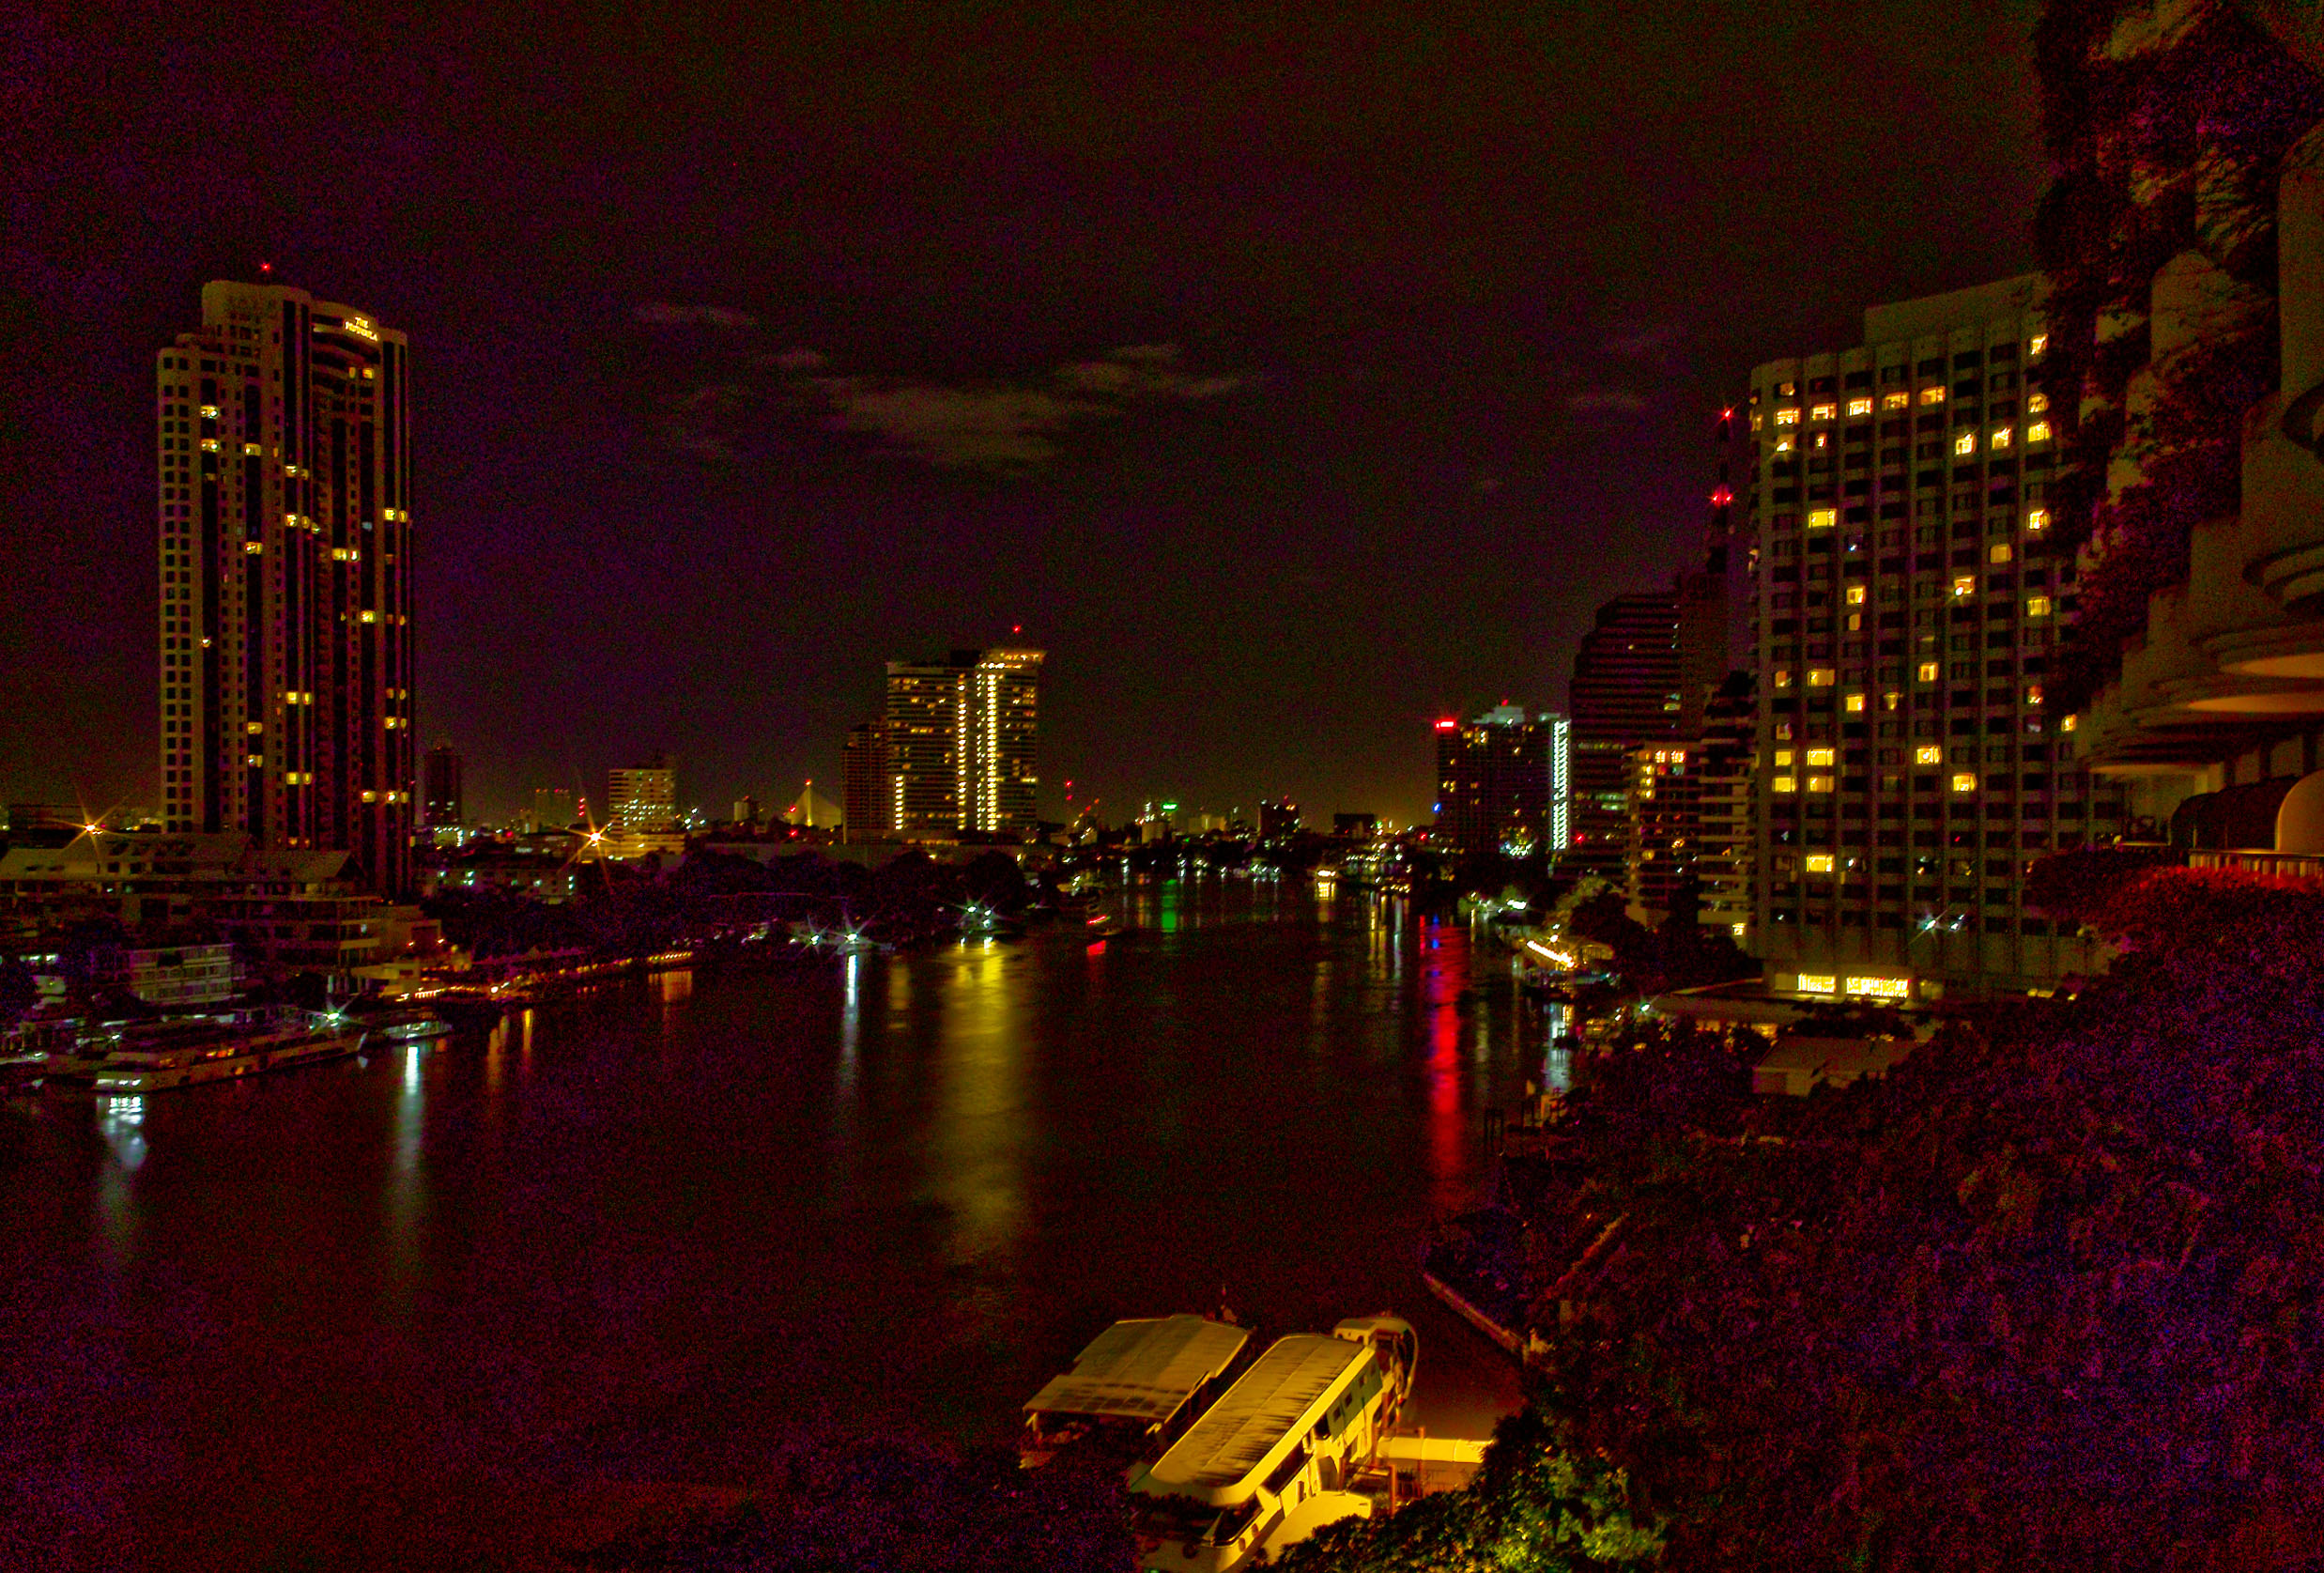 Night of 7-9-11 on Chao Phraya